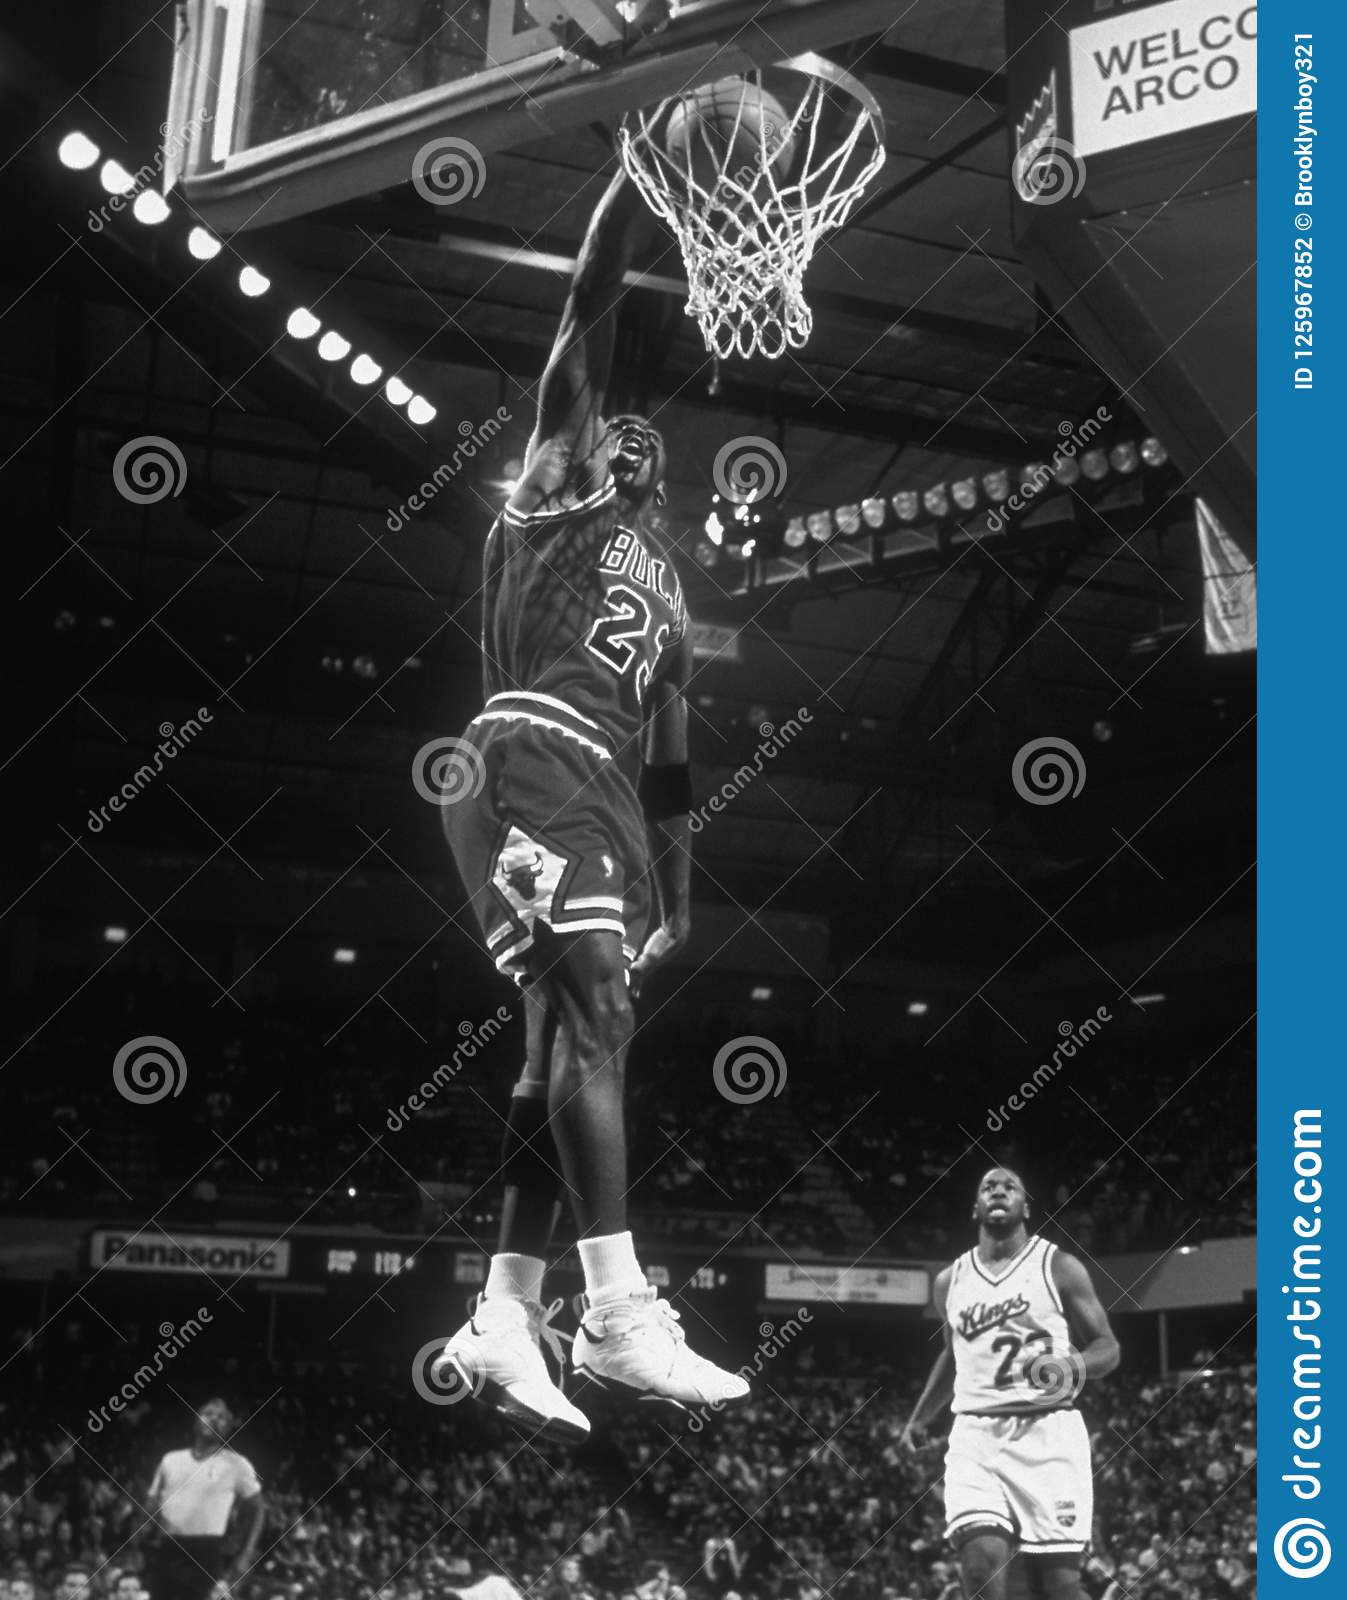 Michael Jordan Hall of Fame player for the Chicago Bulls in game action in  a regular season NBA game. f9f24814efa